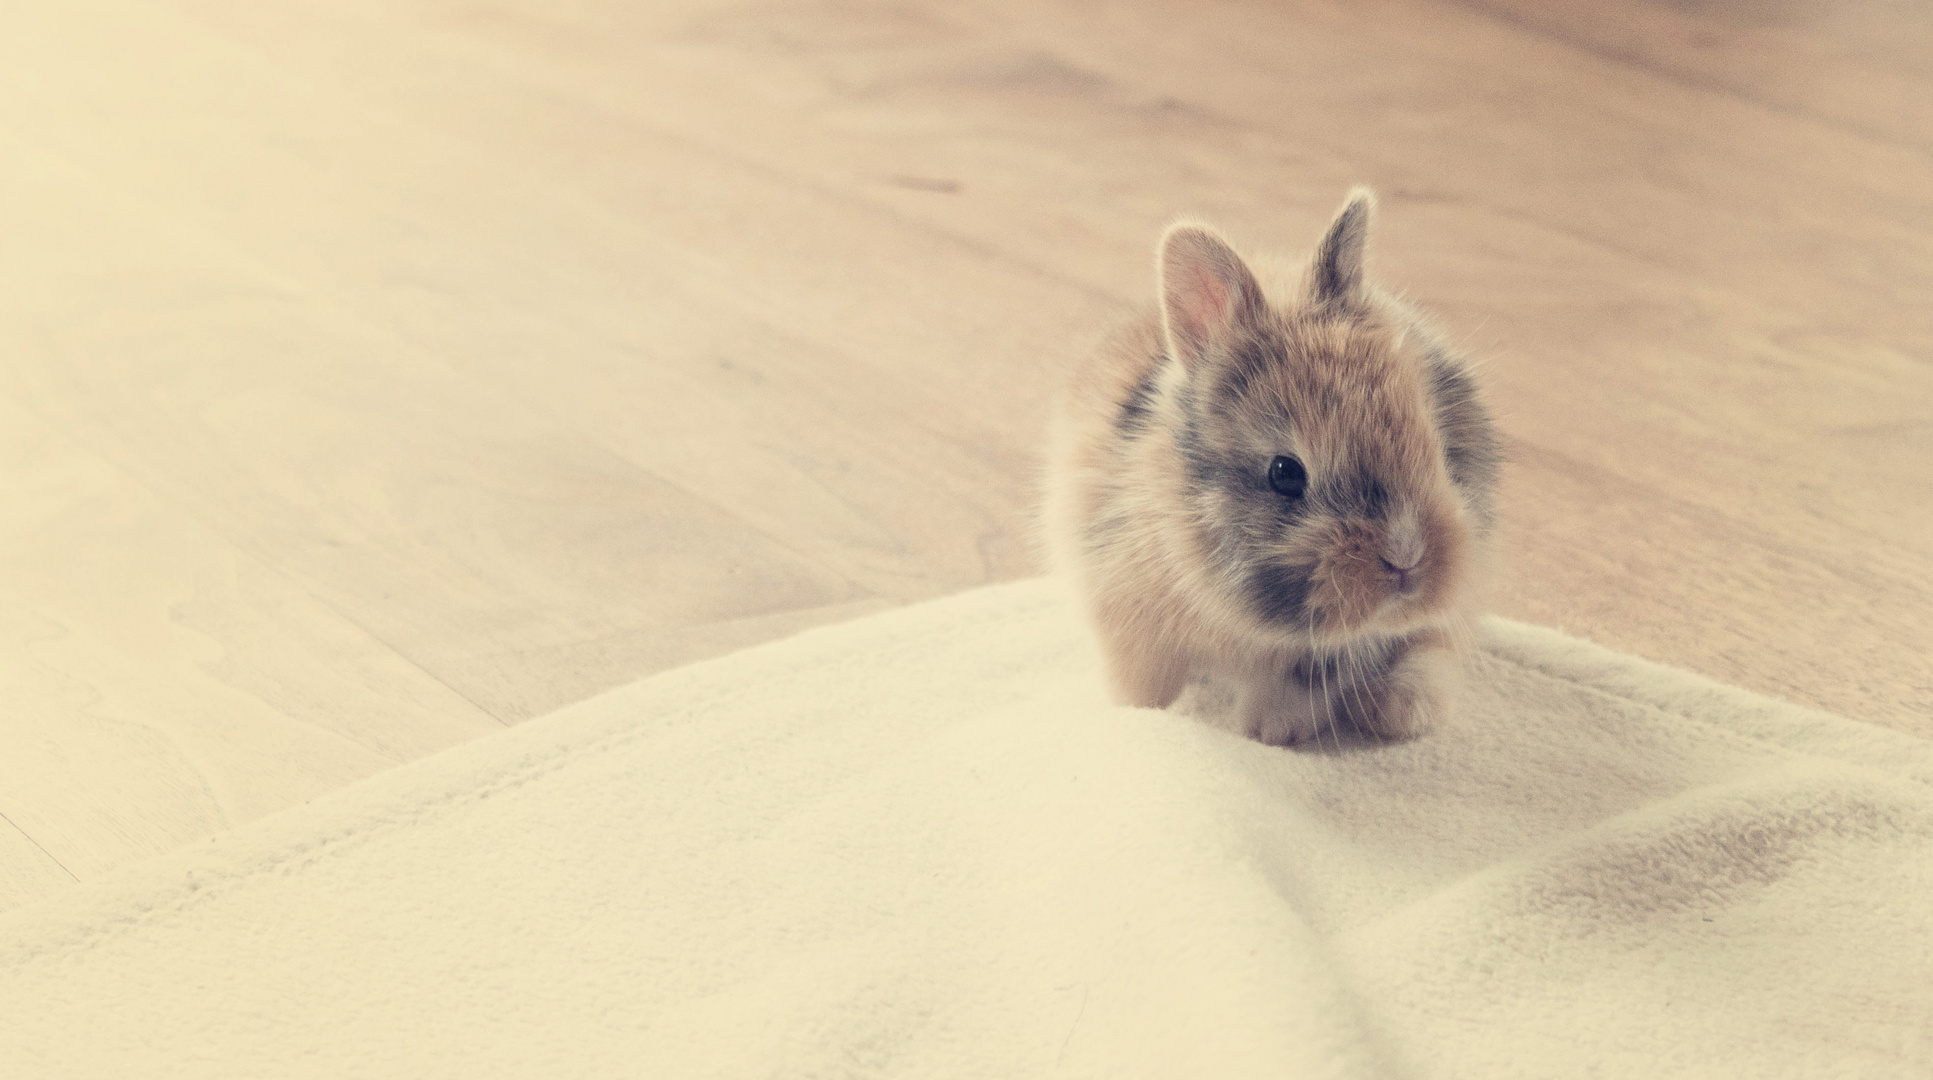 The little Easterbunny